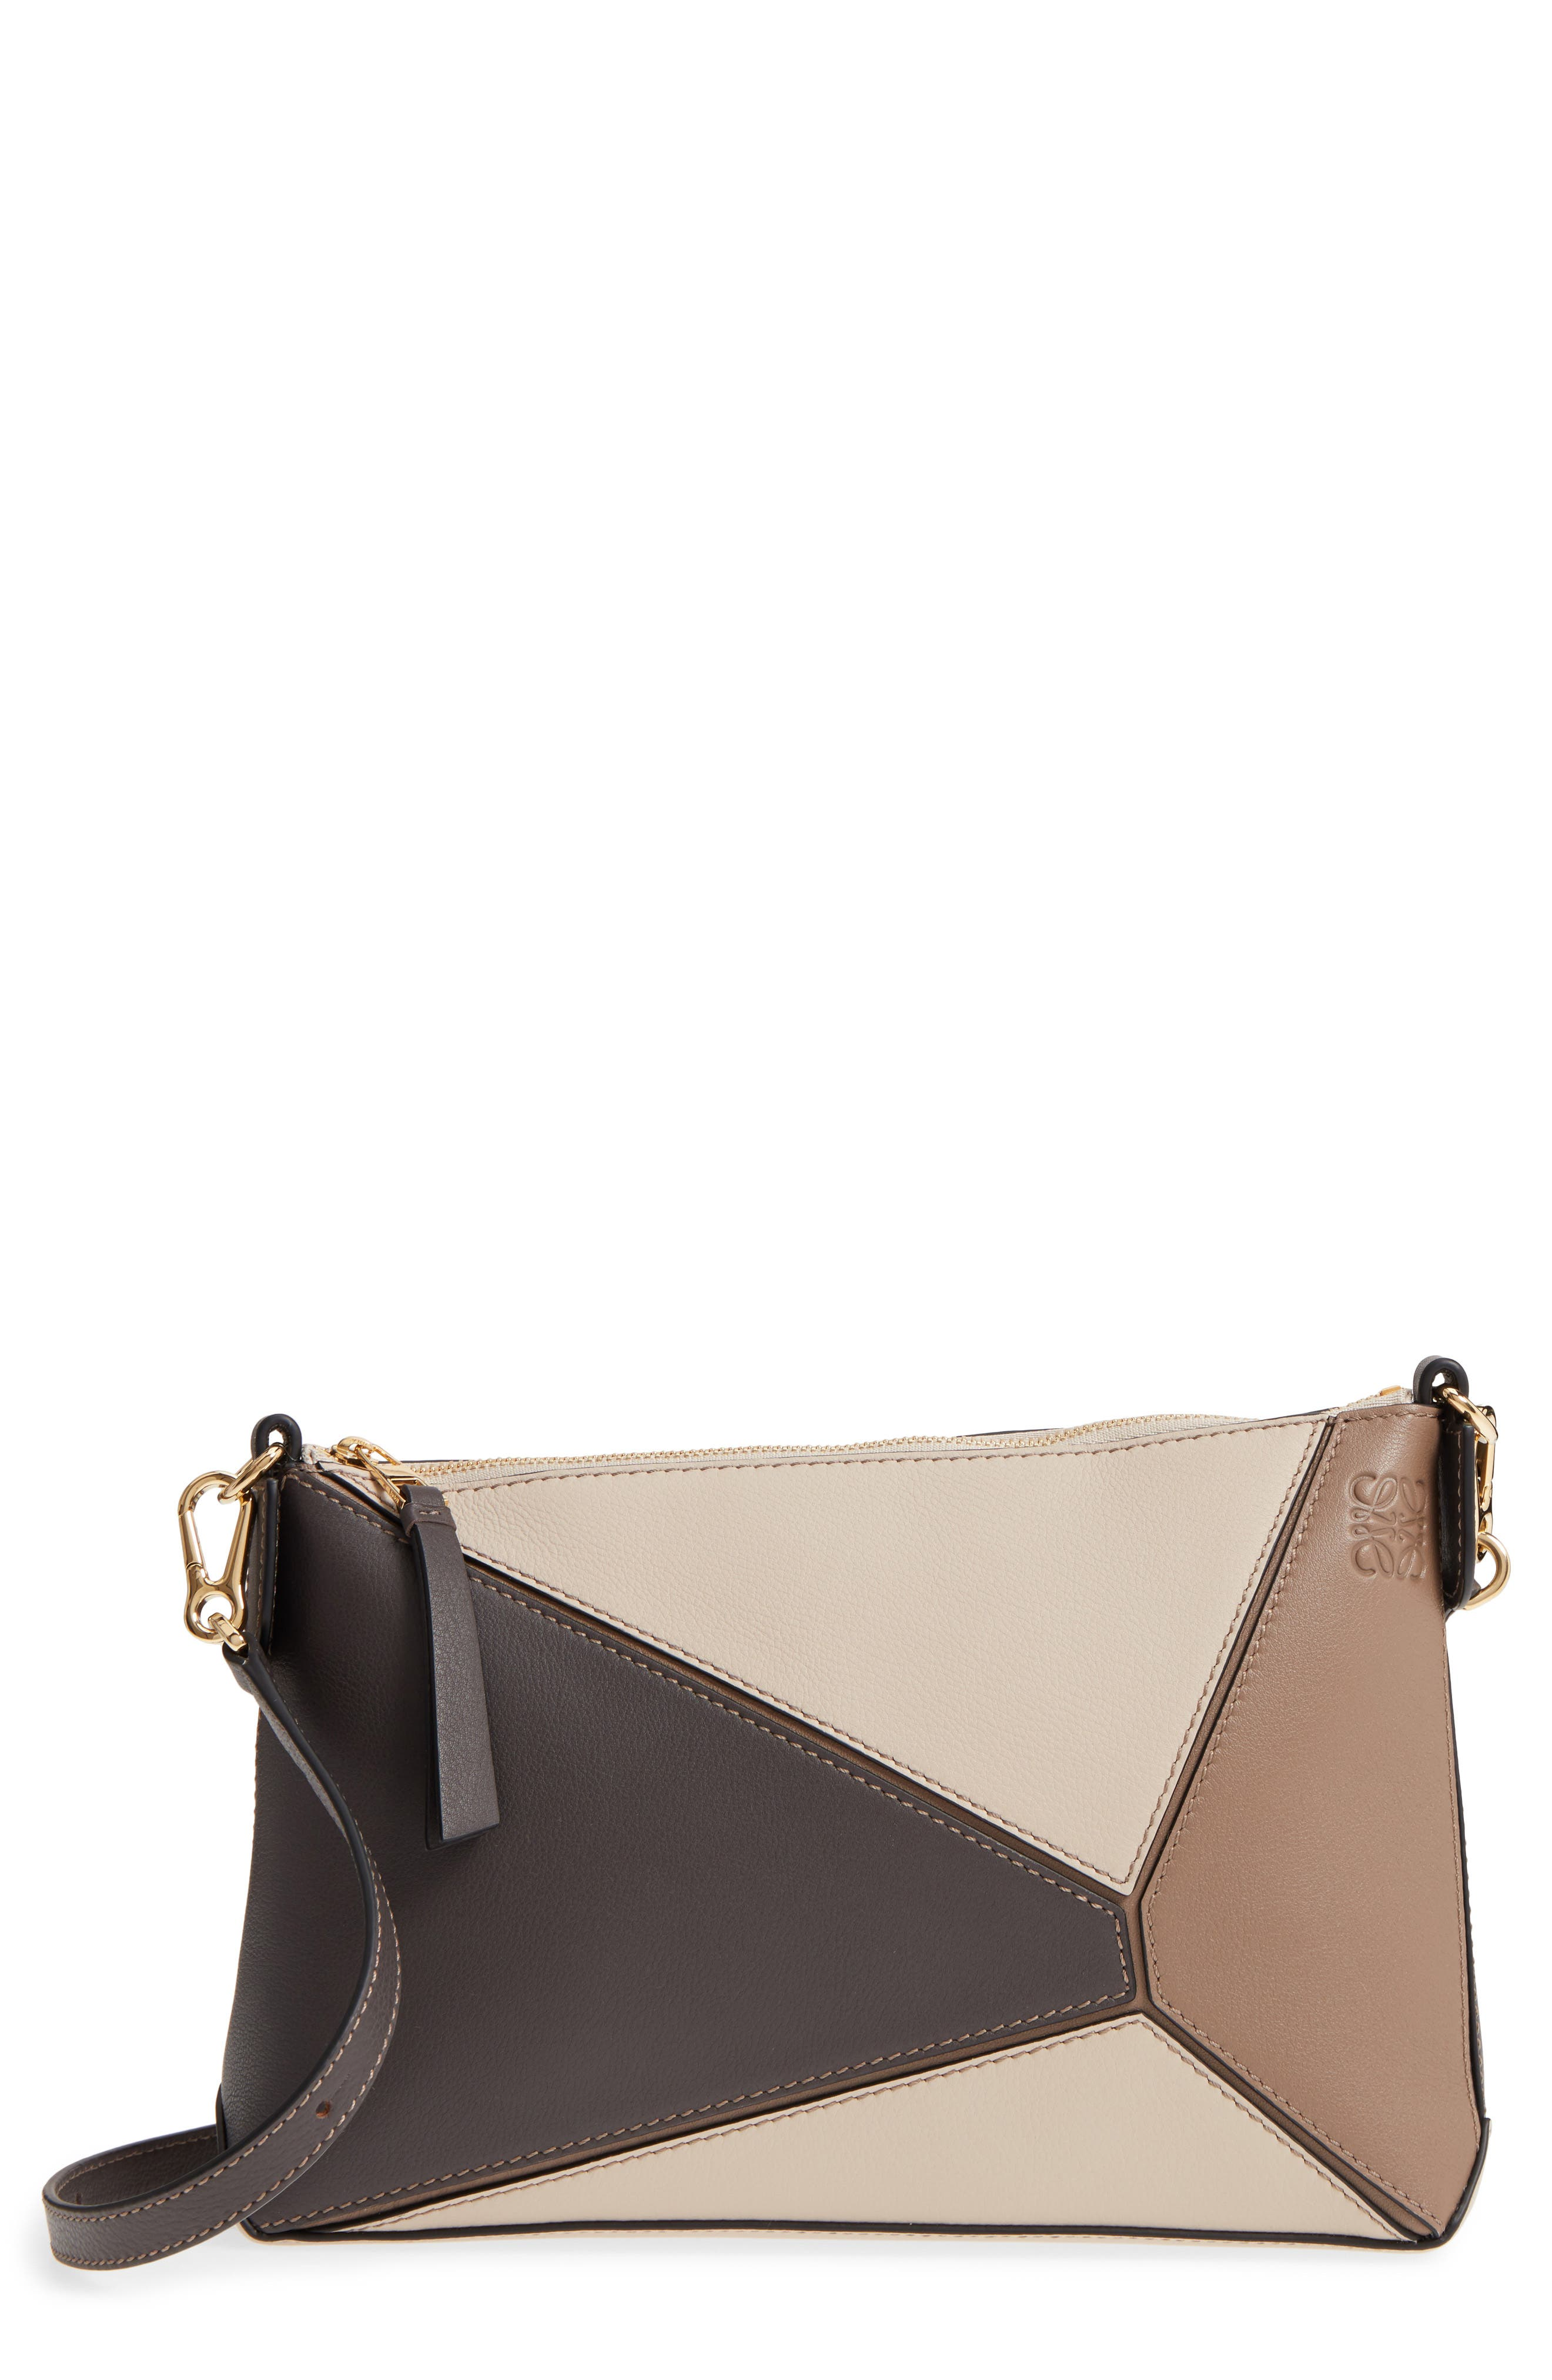 Alternate Image 1 Selected - Loewe Mini Puzzle Calfskin Leather Crossbody Bag